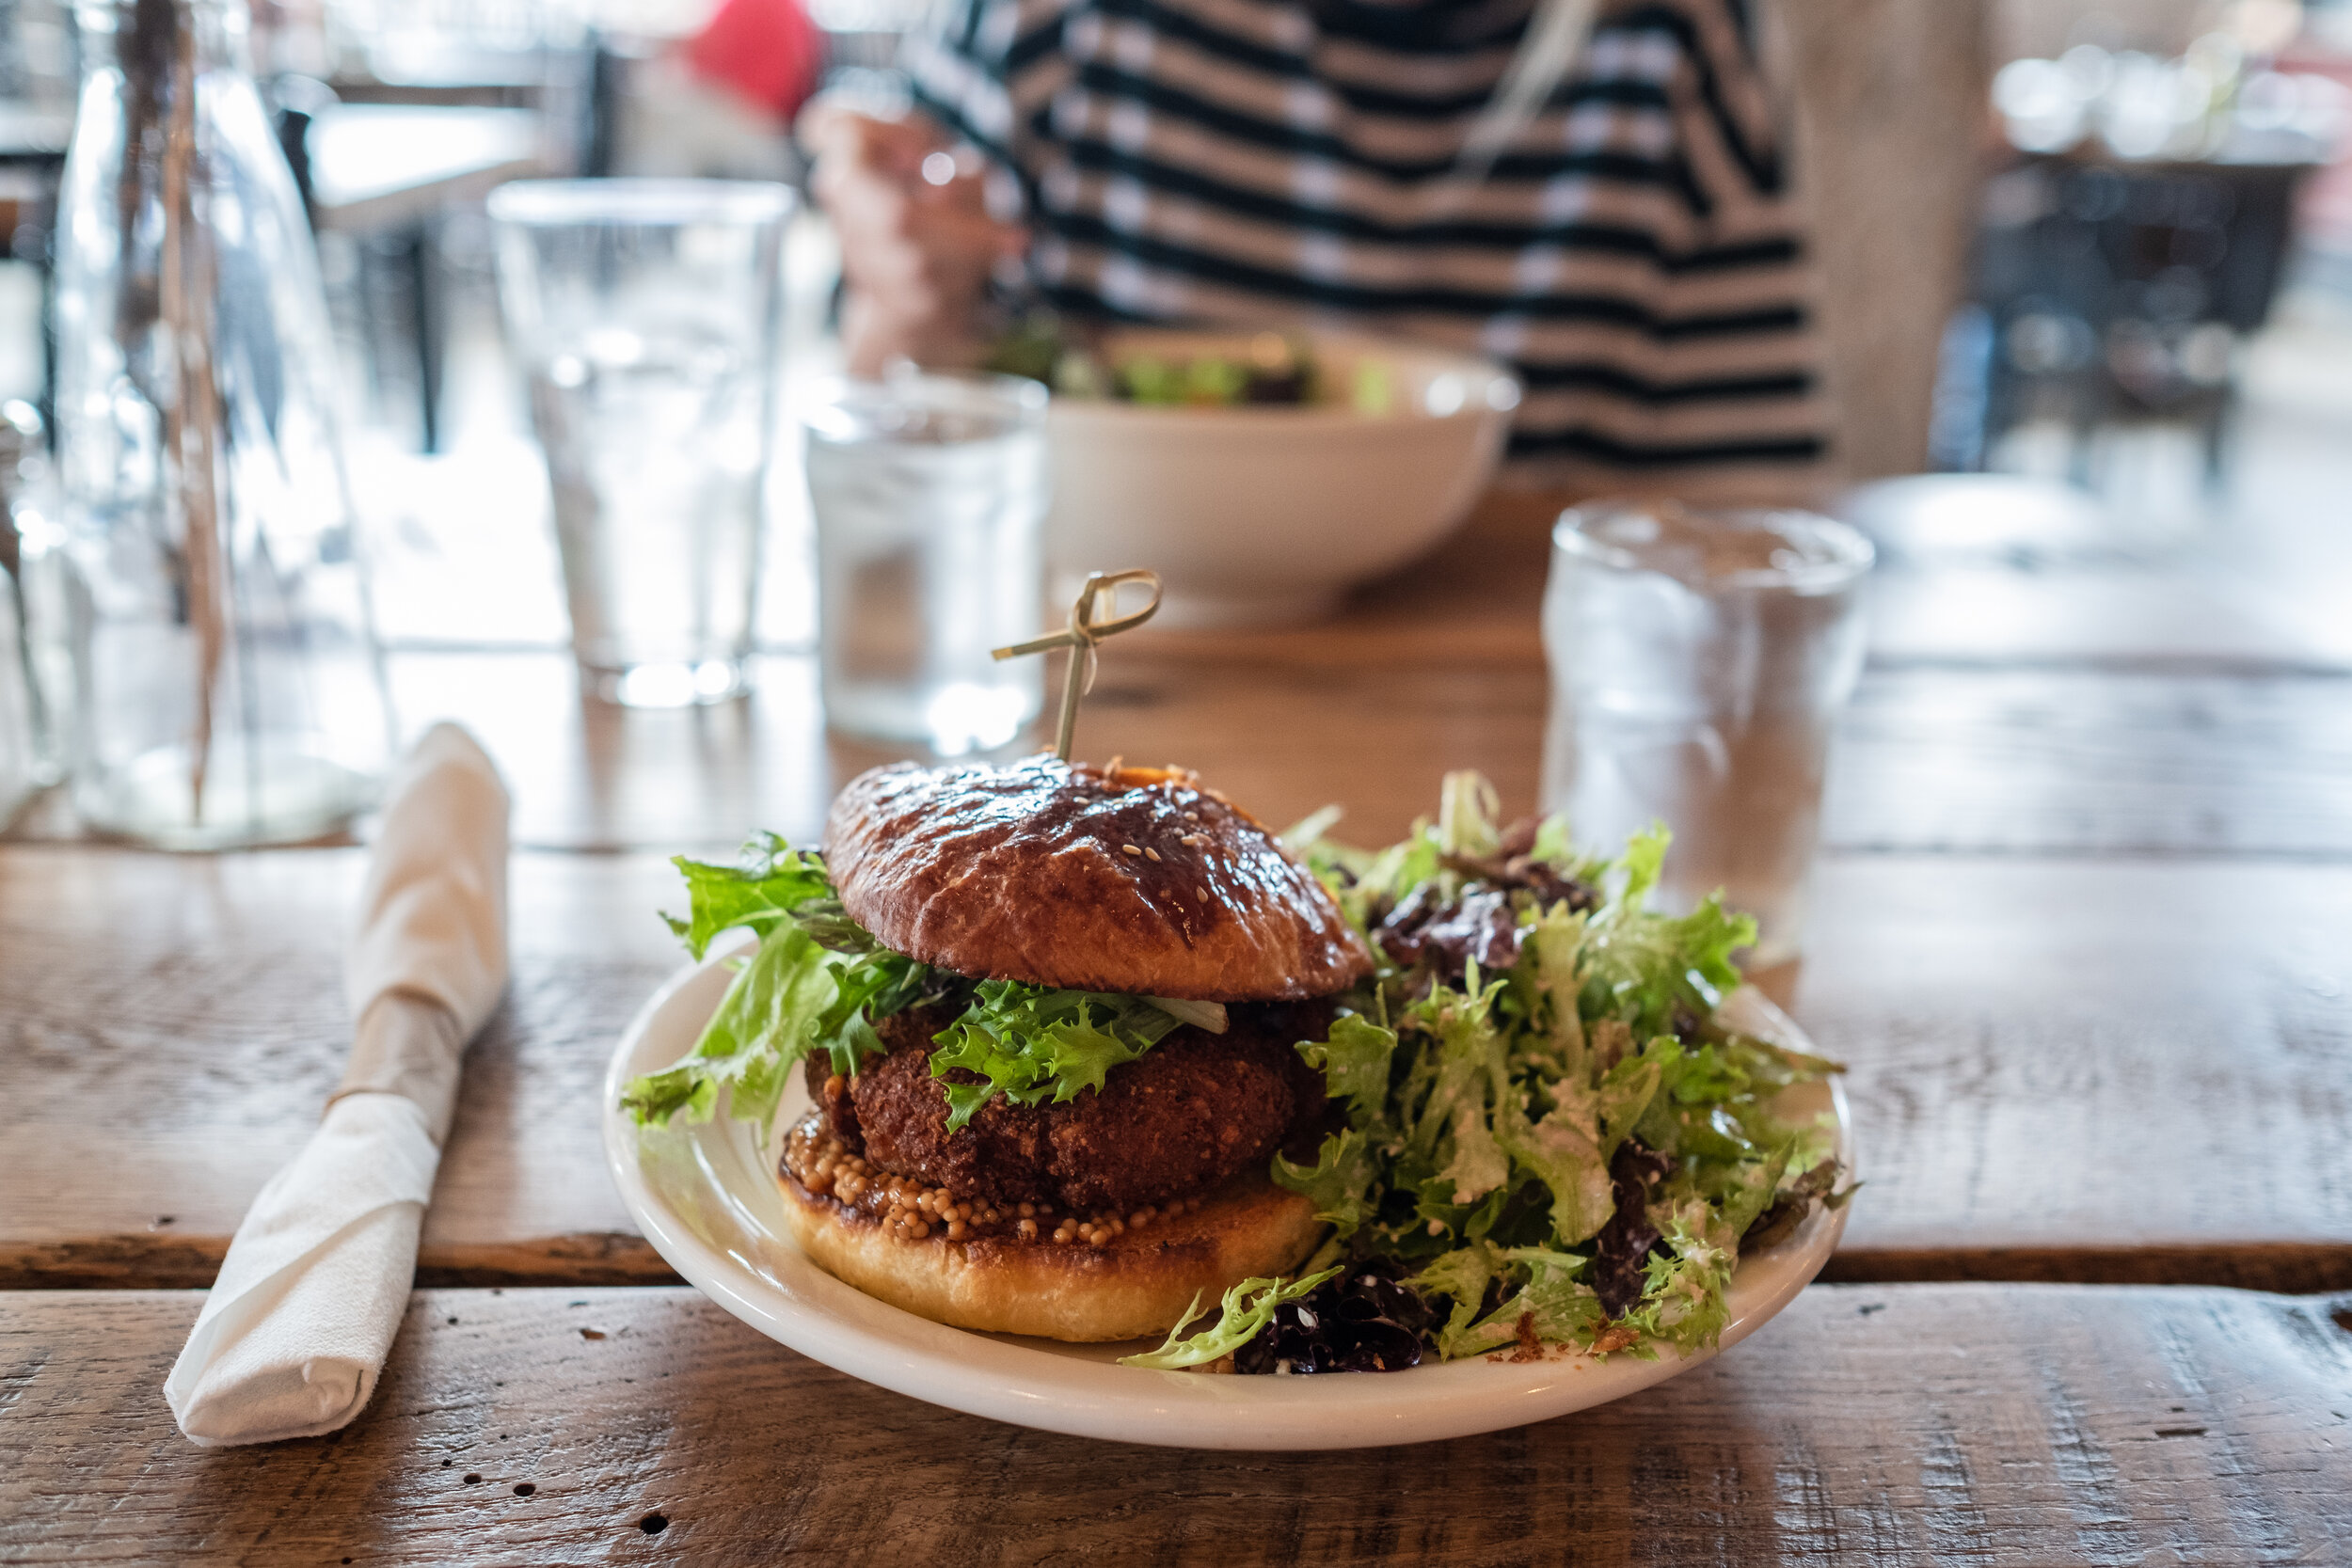 The Bacon Jam Burger at Commune is delicious!